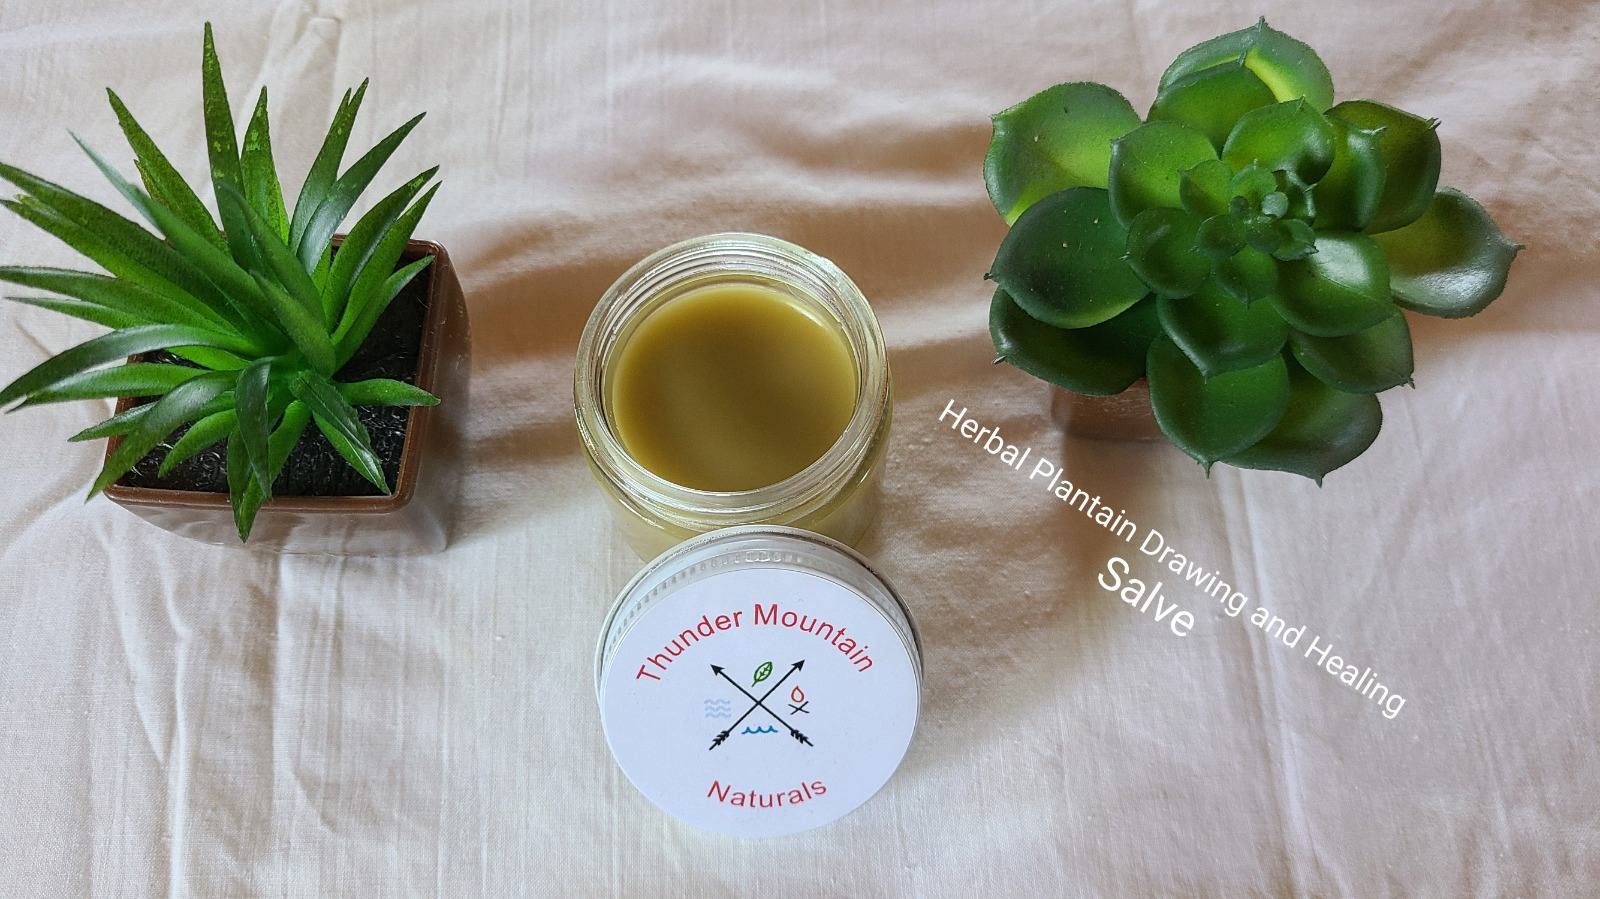 Herbal Plantain Drawing and Healing Salve